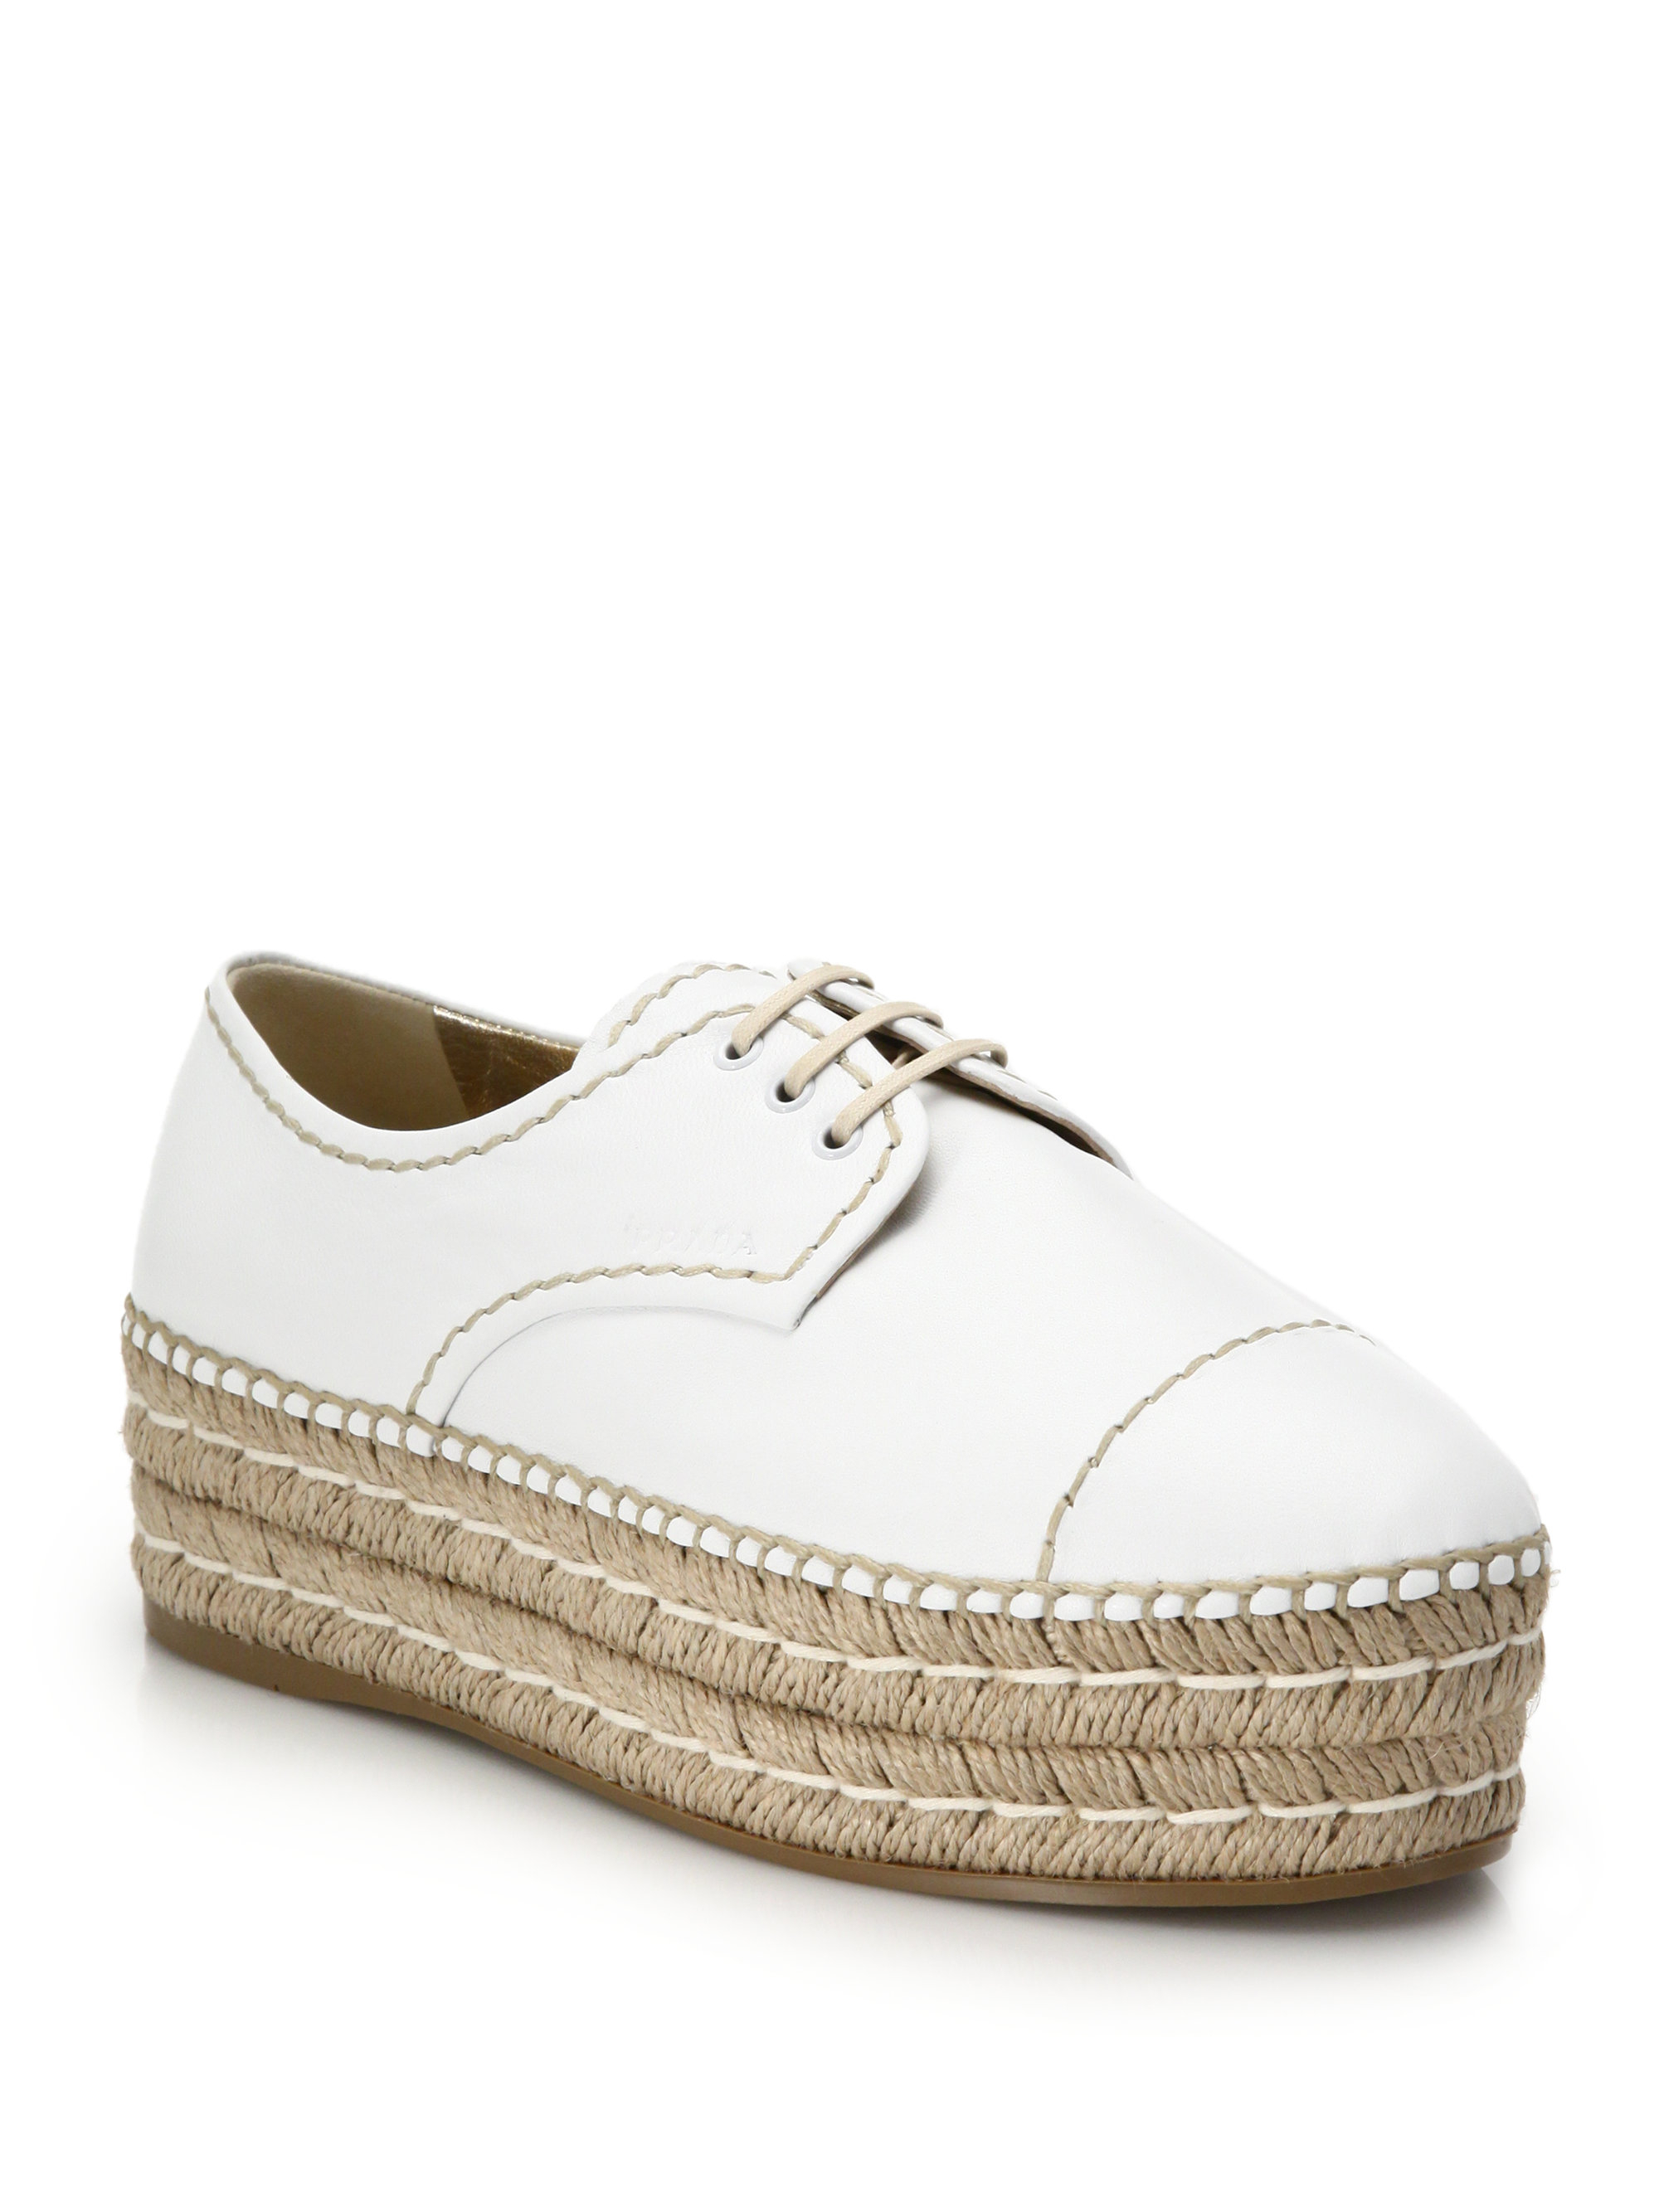 9522c2035eb5 Lyst - Prada Espadrille Platform Leather Lace-up Shoes in White